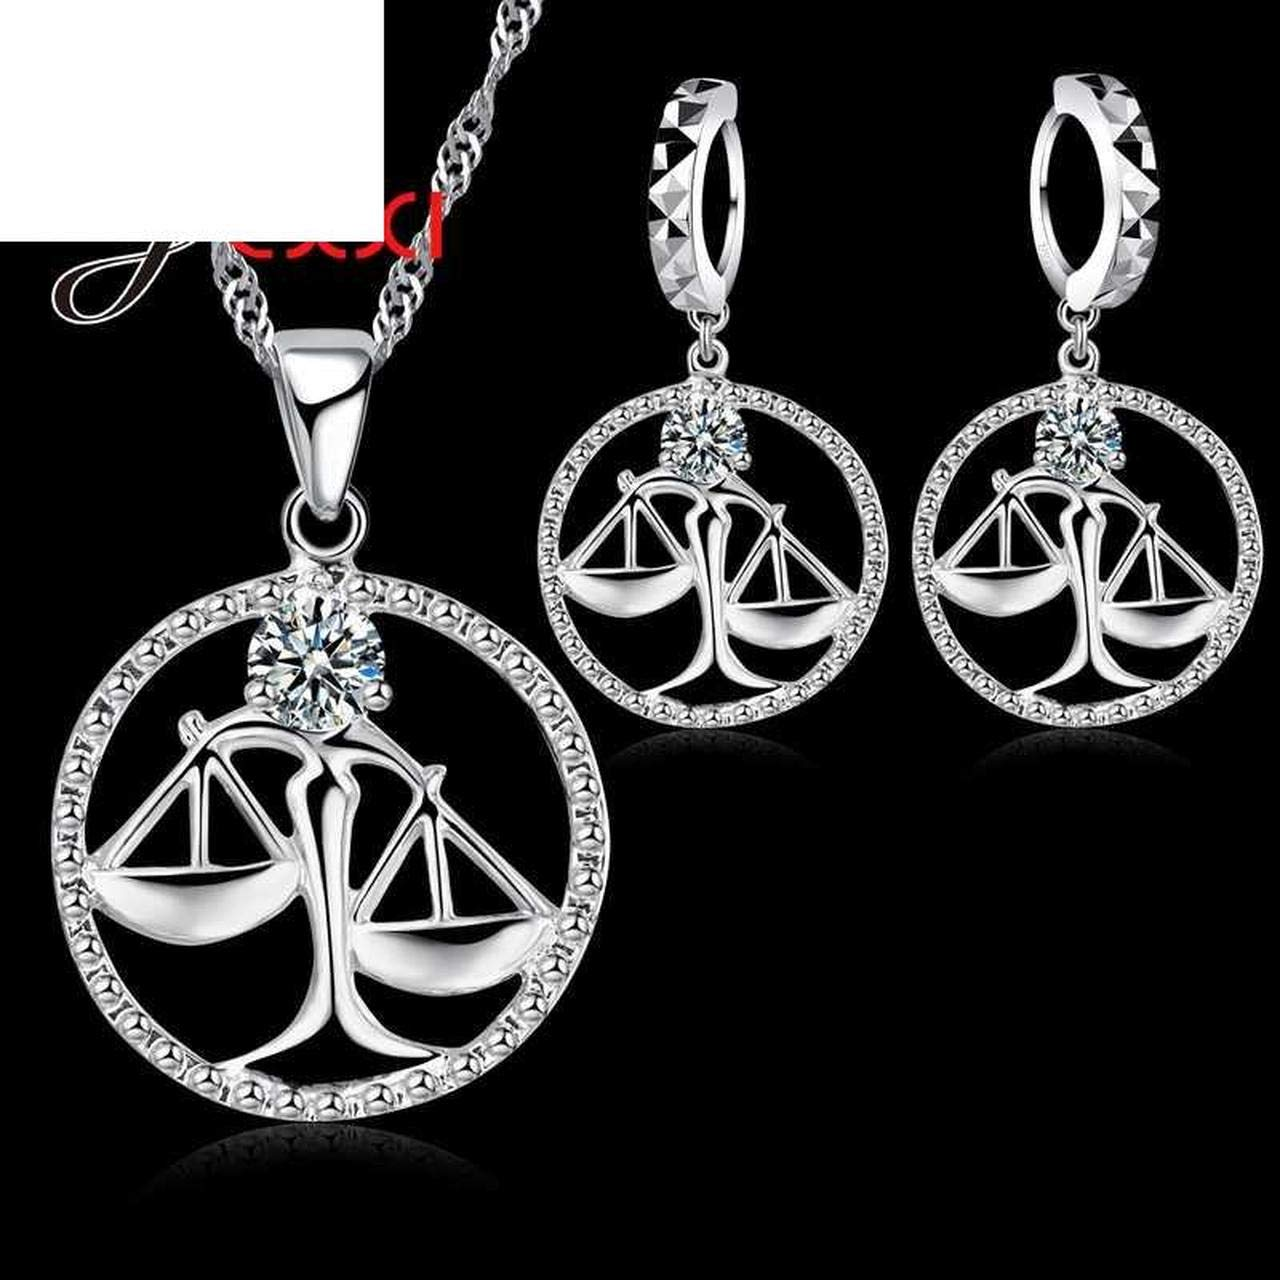 Ingenious Libra Necklace Pendant 925 Sterling Silver Necklace/&Earrings Jewelry Sets Accessories for Girlfriend Gife